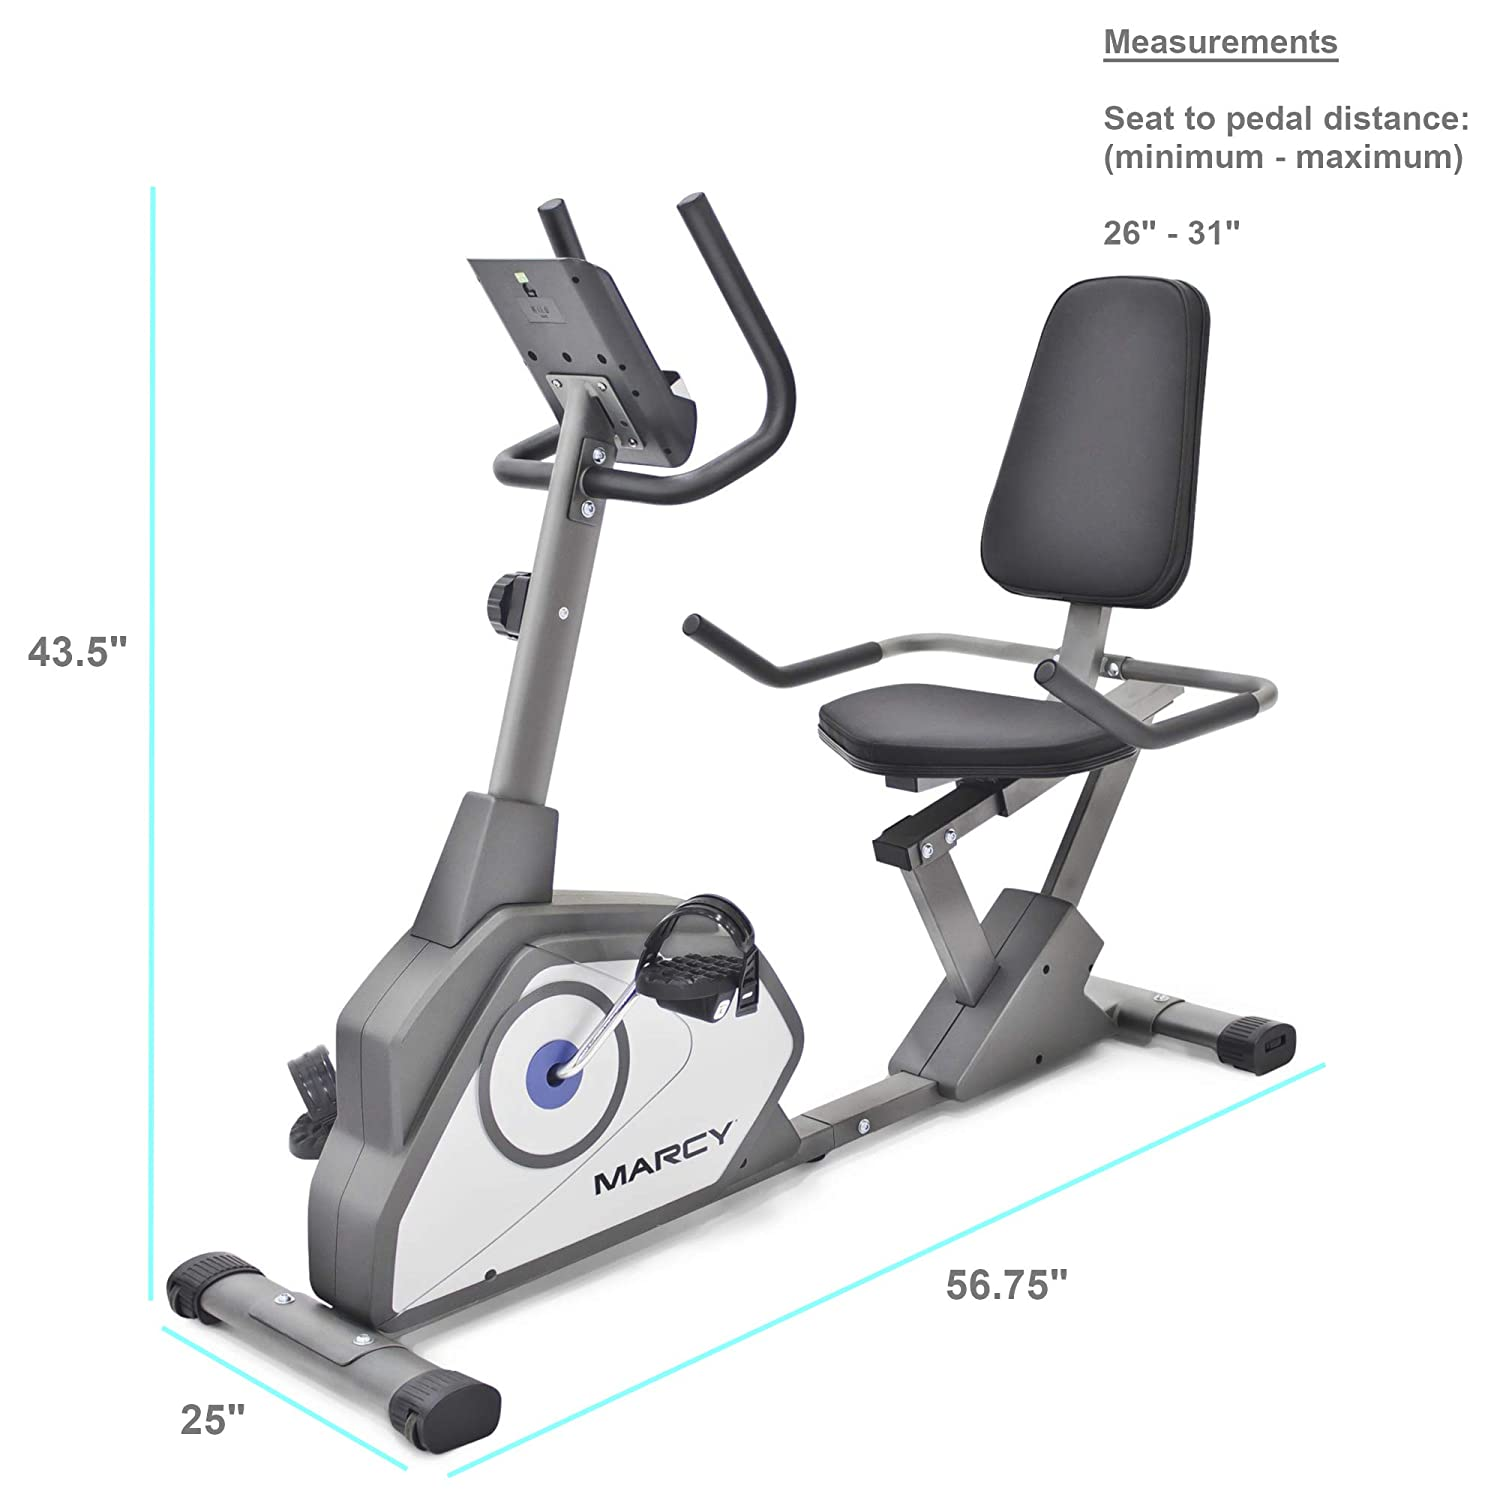 Amazon Marcy Magnetic Recumbent Exercise Bike With 8 Resistance Levels NS 40502R Sports Outdoors